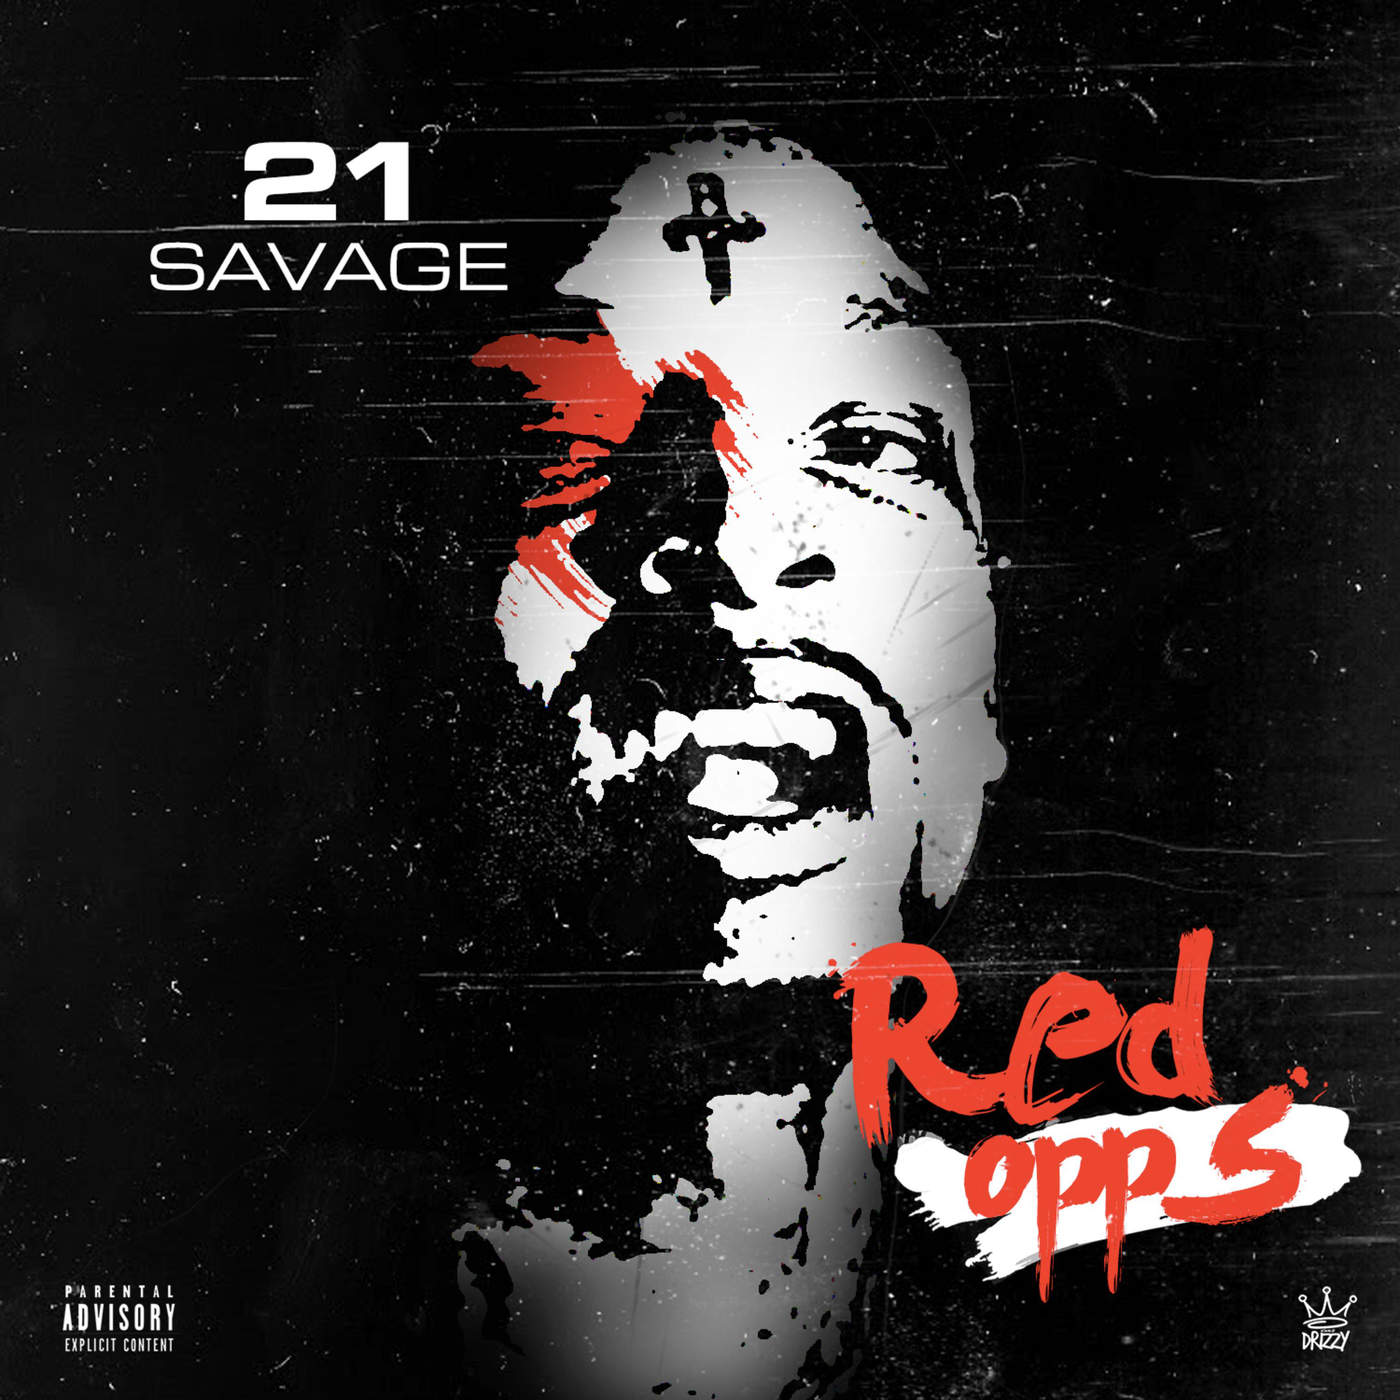 21 Savage - Red Opps - Single Cover